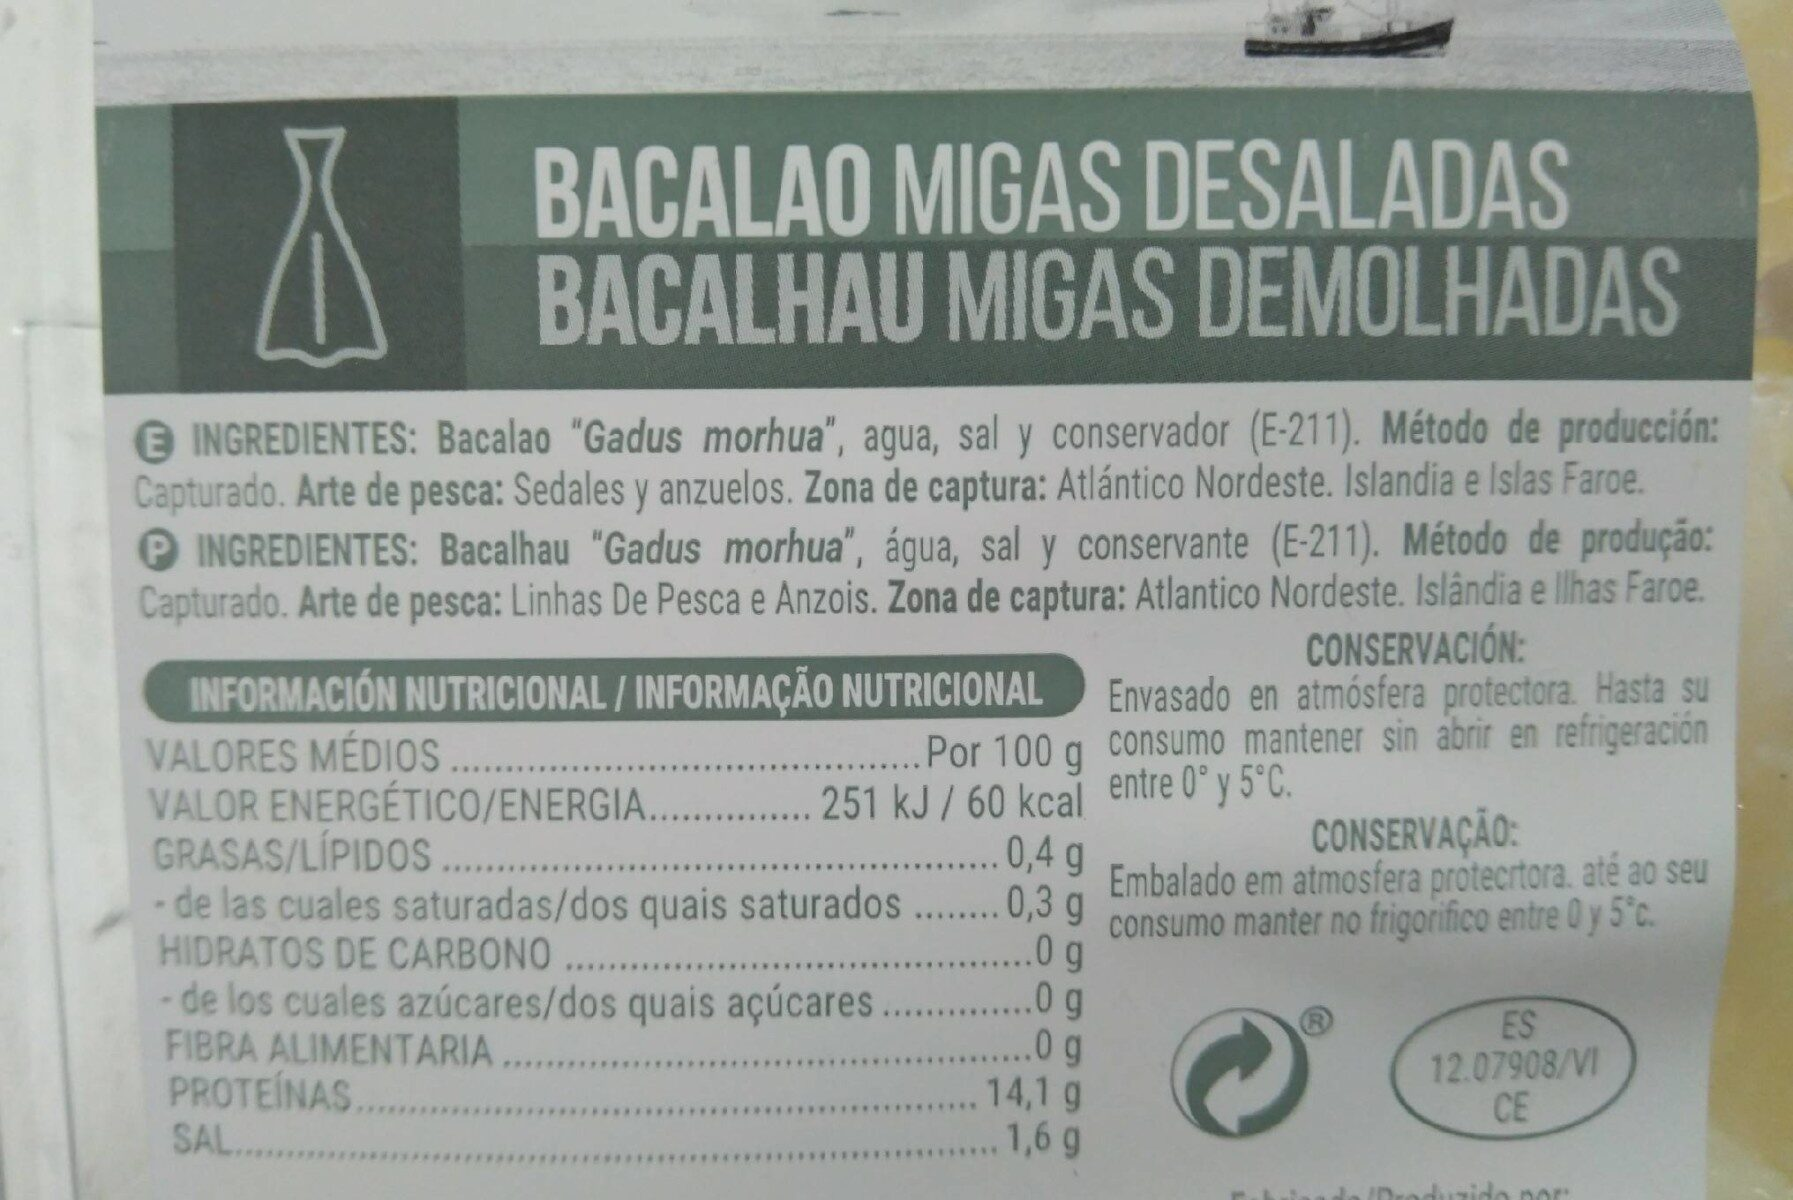 Bacalao Migas Desaladas - Nutrition facts